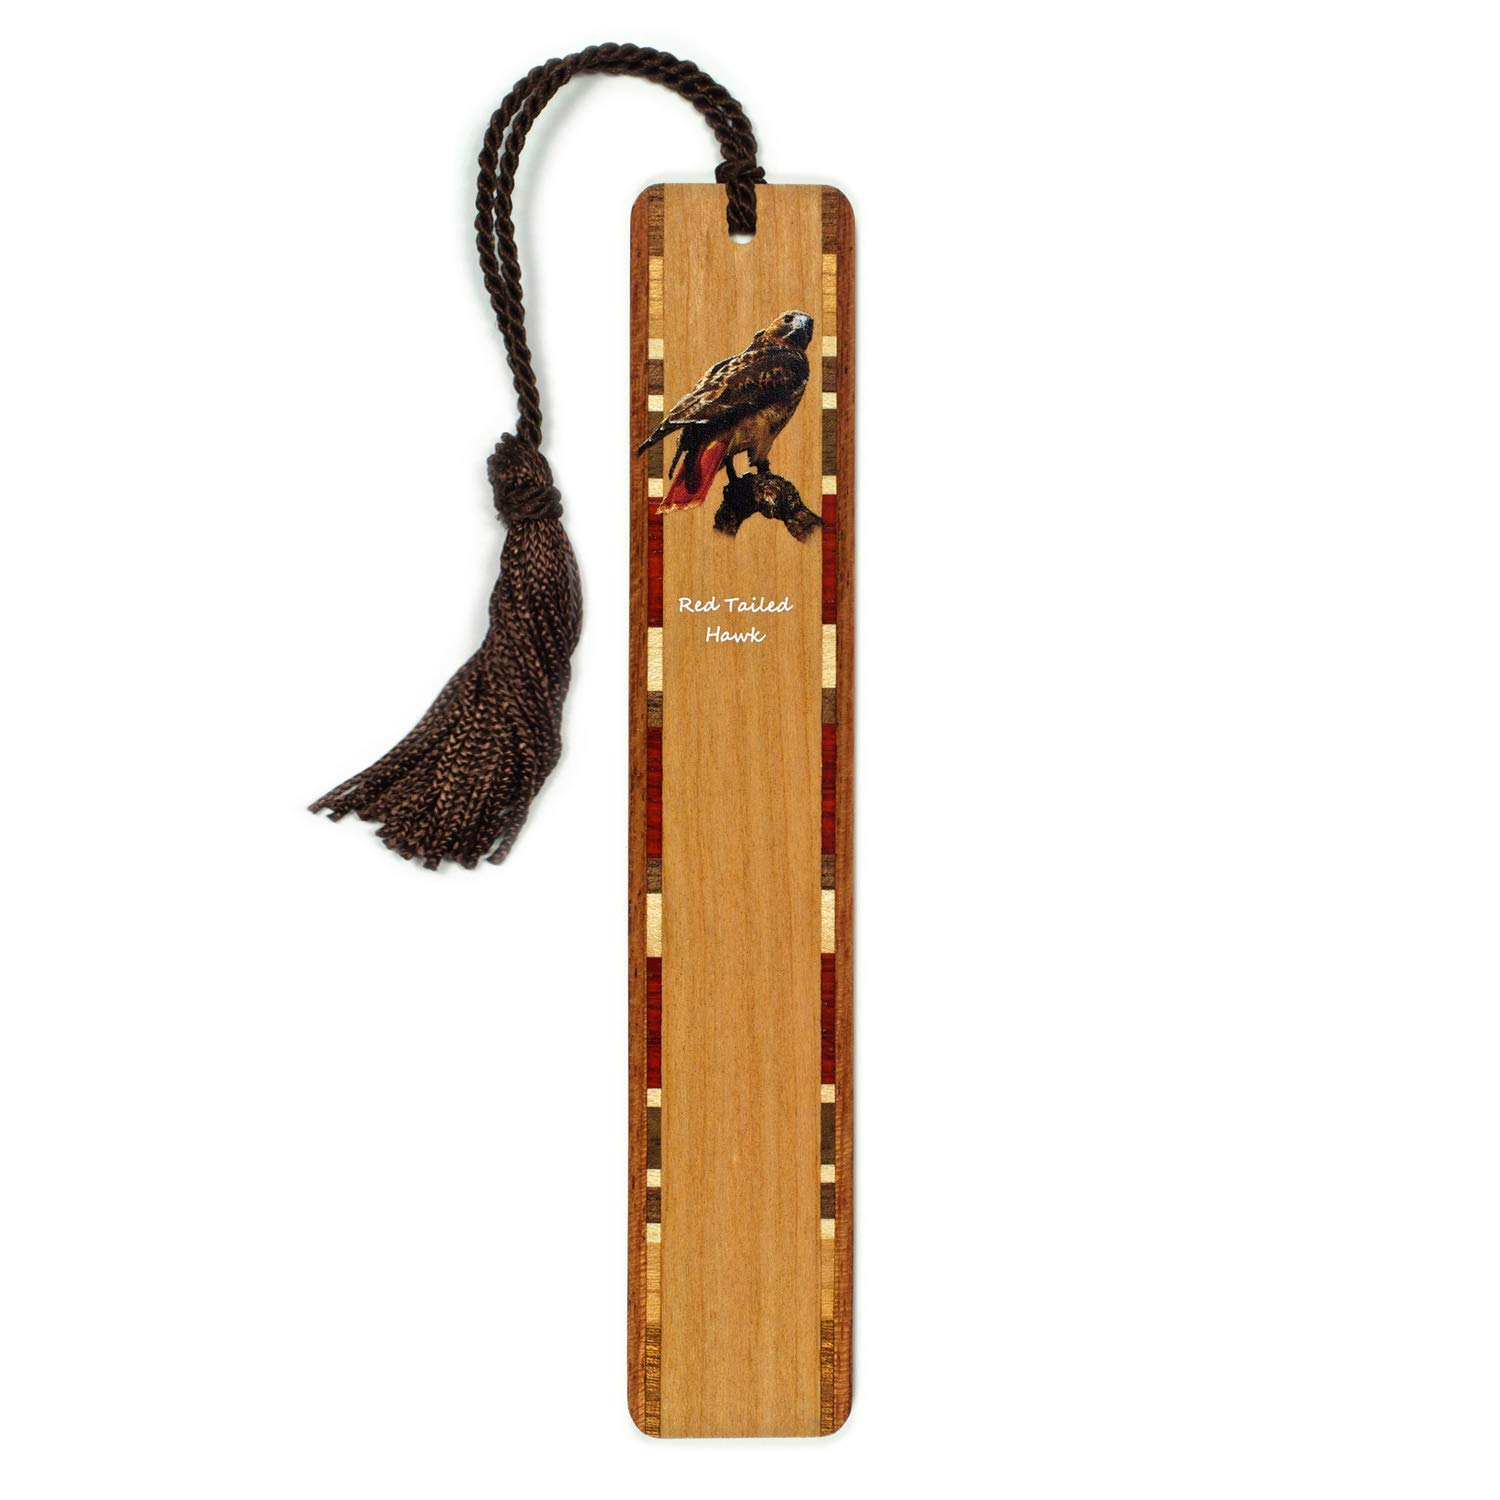 Mitercraft Red Tailed Hawk (Double Sided) Wooden Bookmark with Tassel - Search B07QY547TF for Personalized Version